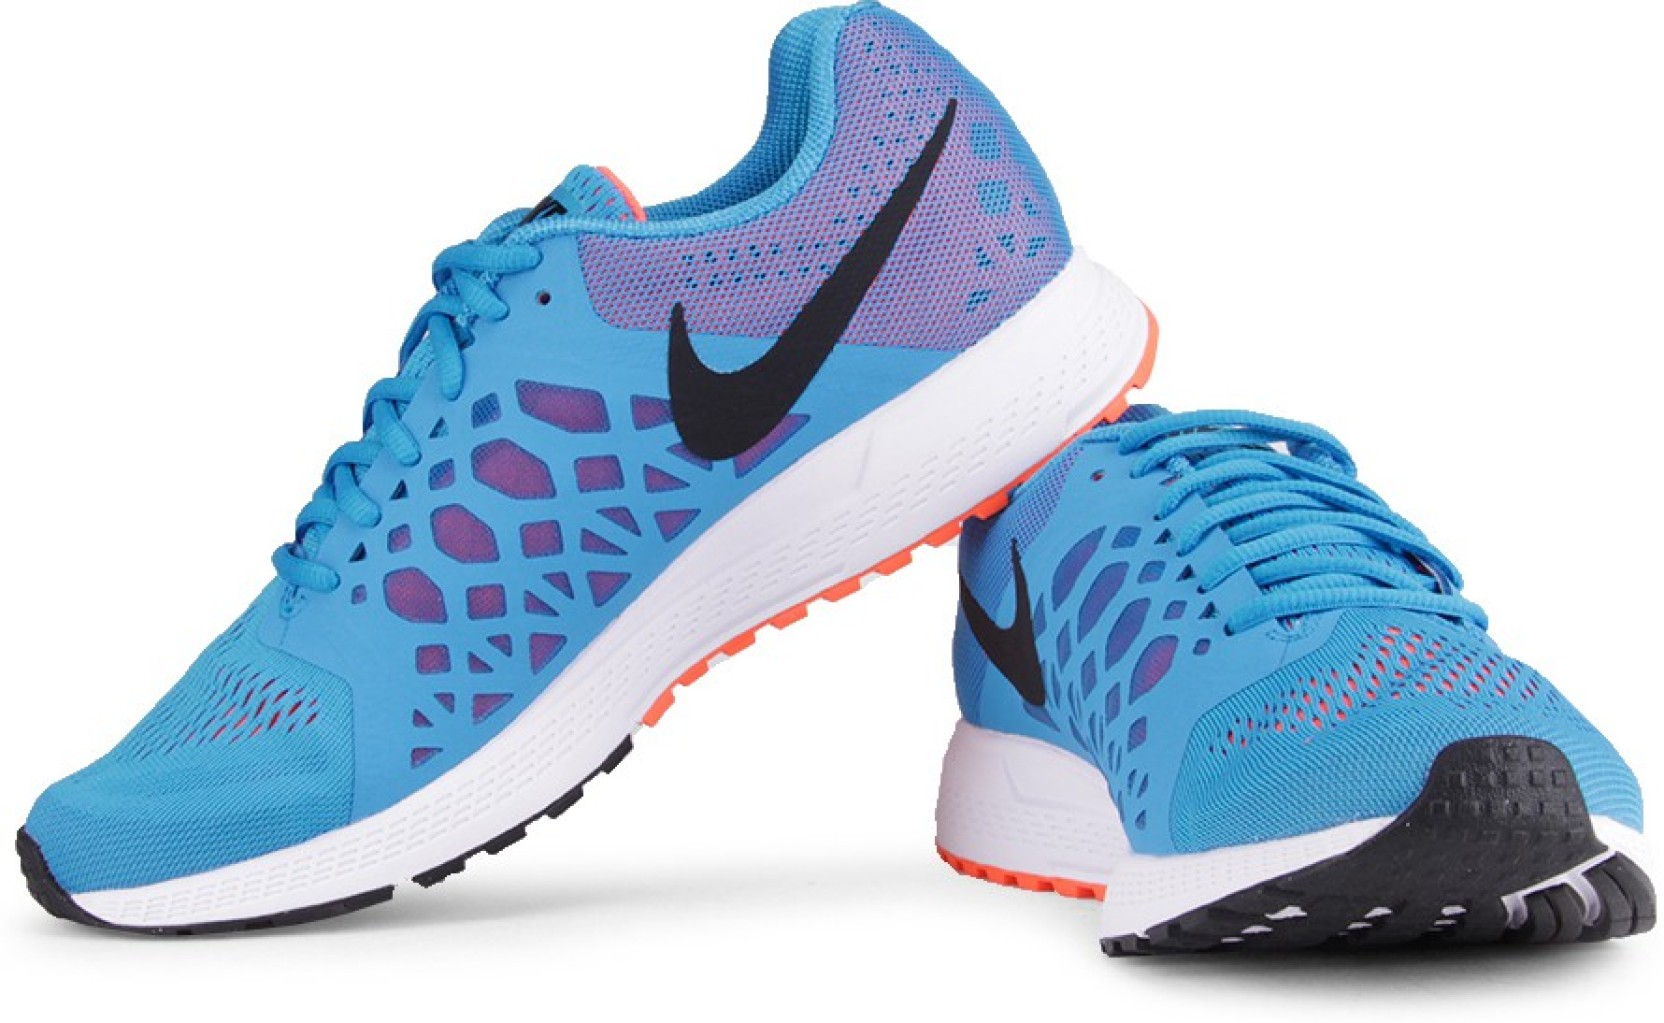 Nike Shoes India Price List